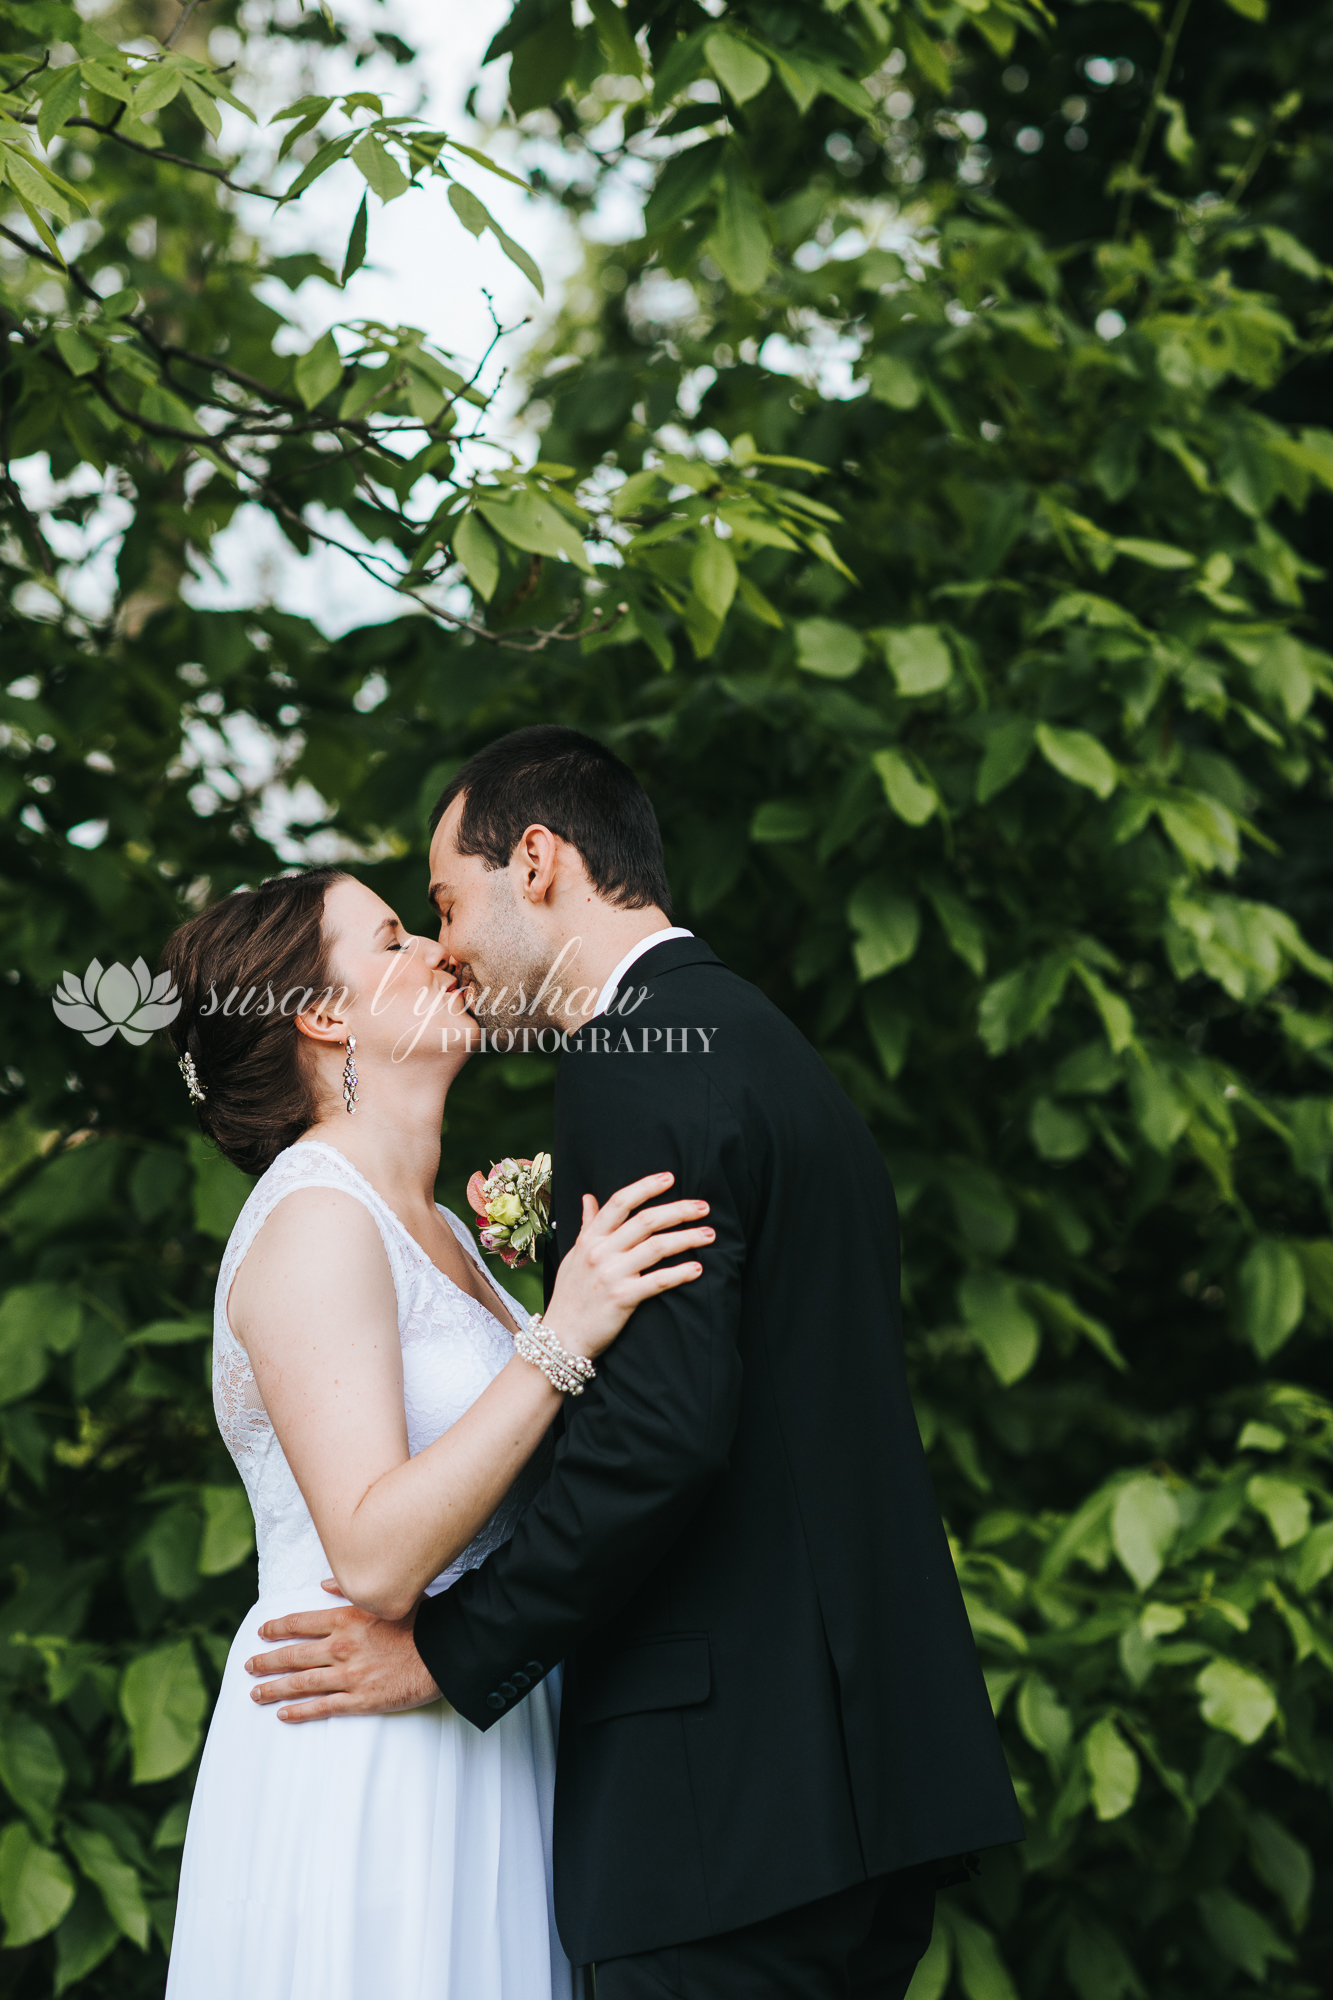 Adena and  Erik Wedding 05-17-2019 SLY Photography-23.jpg